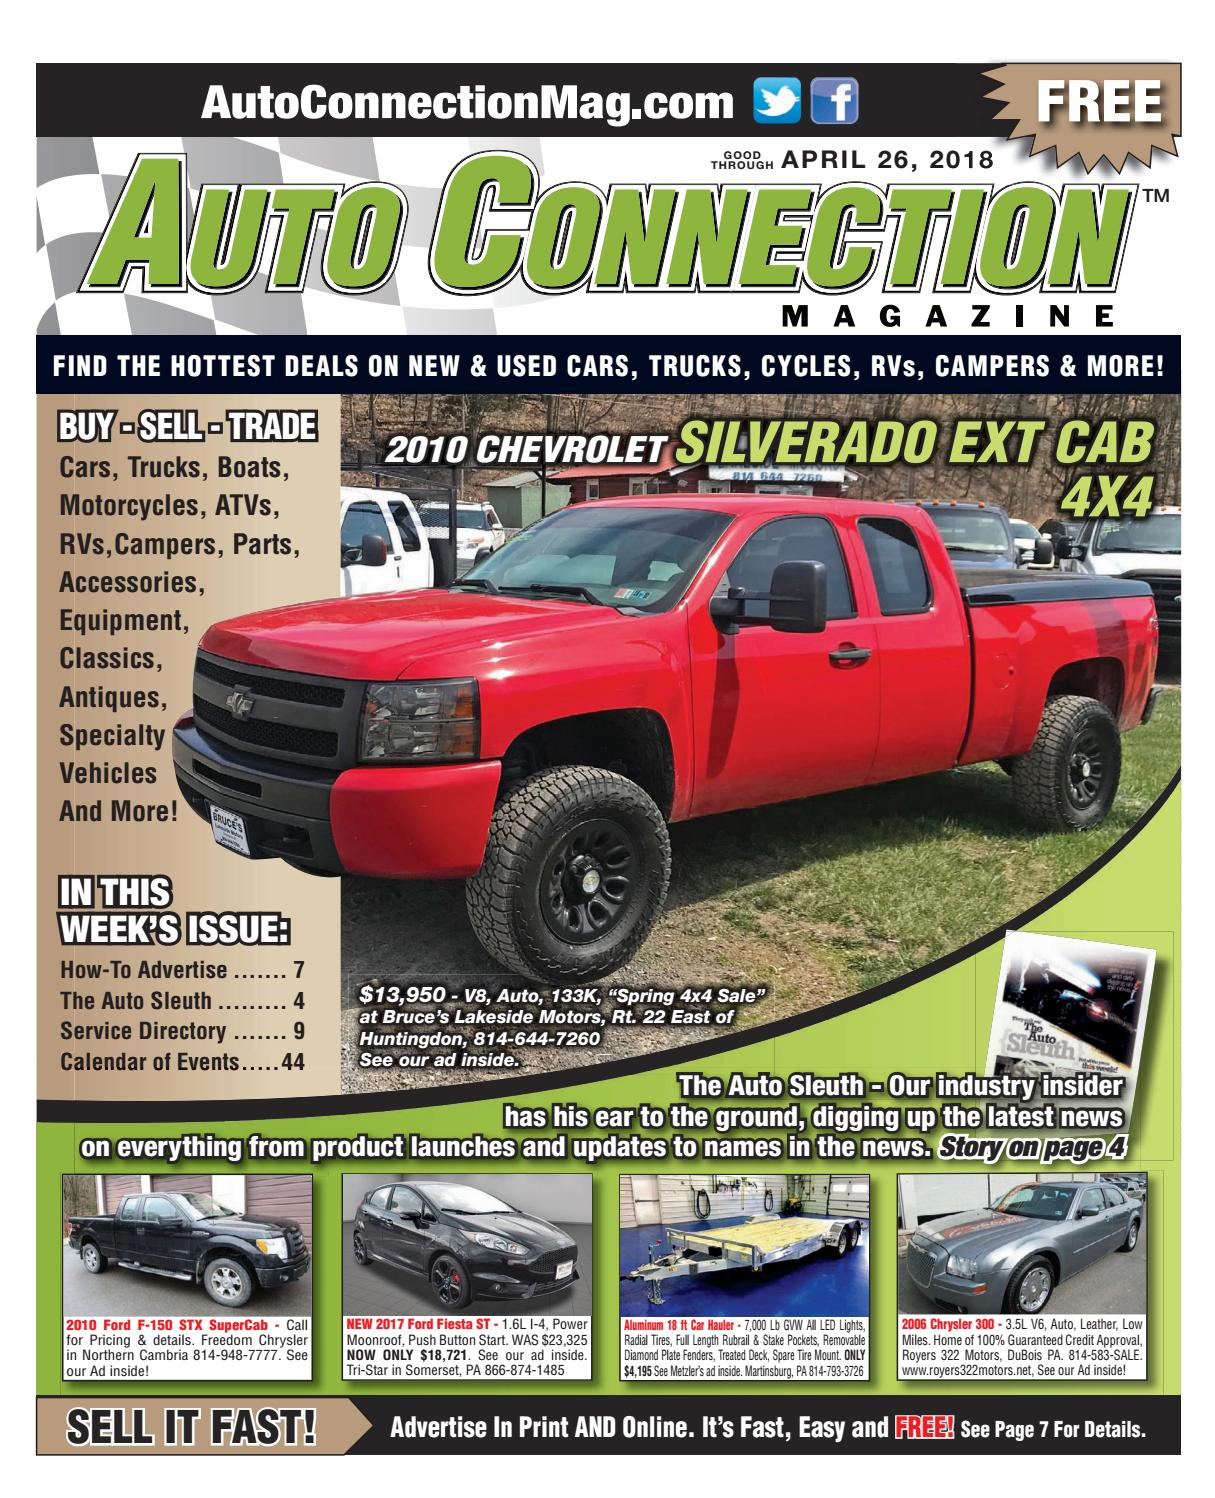 7384f41fd981 04-26-18 Auto Connection Magazine by Auto Connection Magazine - issuu